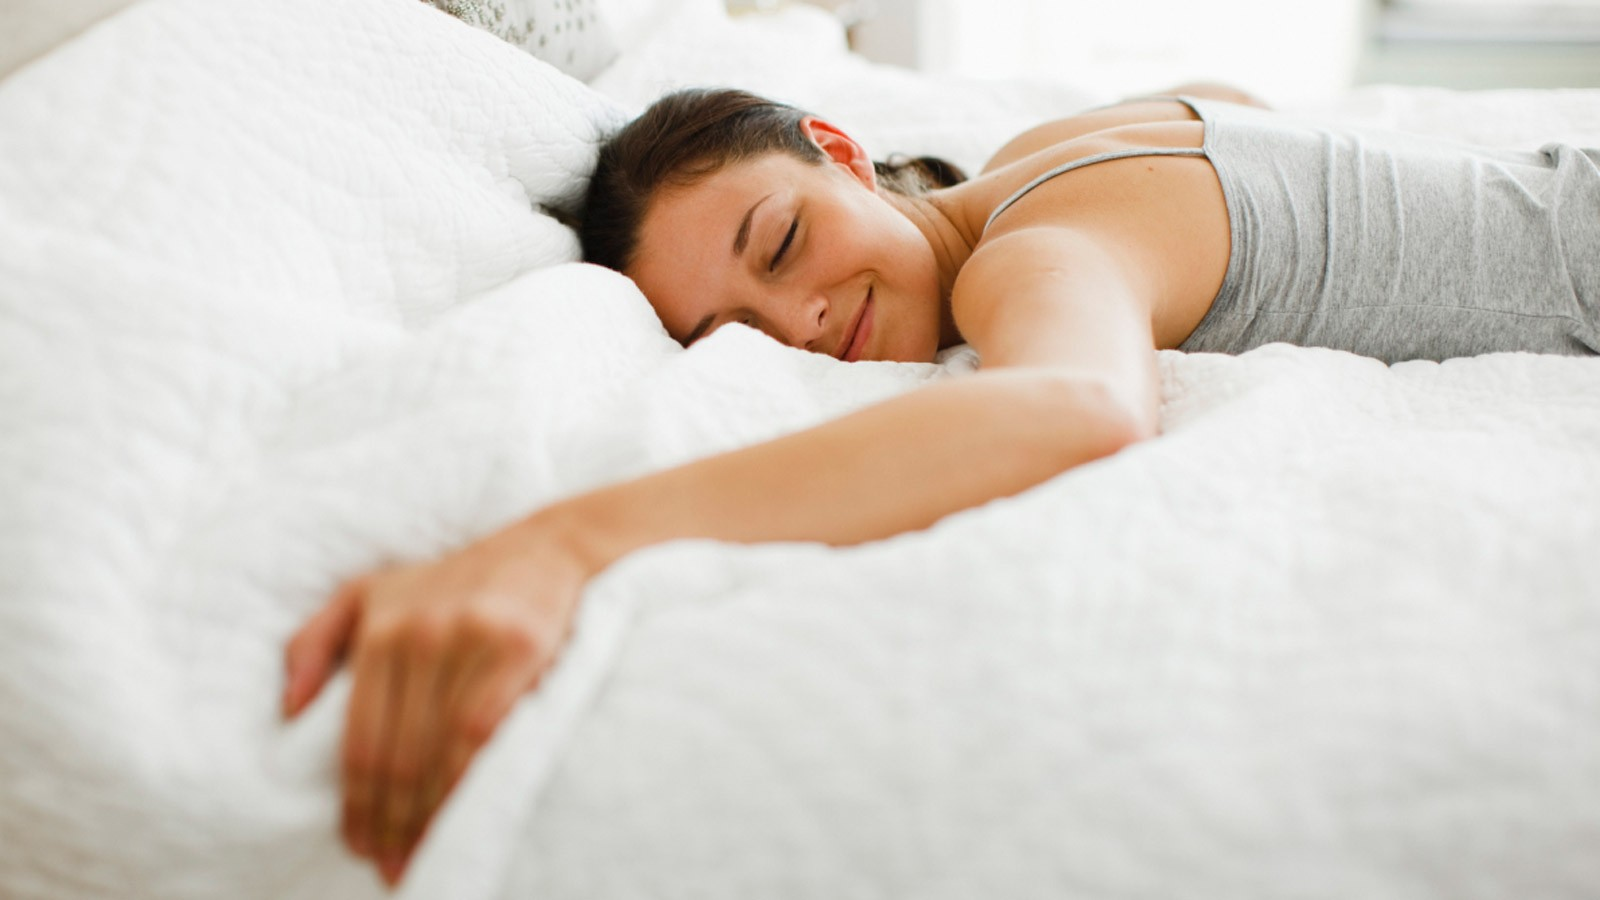 Getting a good night's sleep is also an important part of weight loss